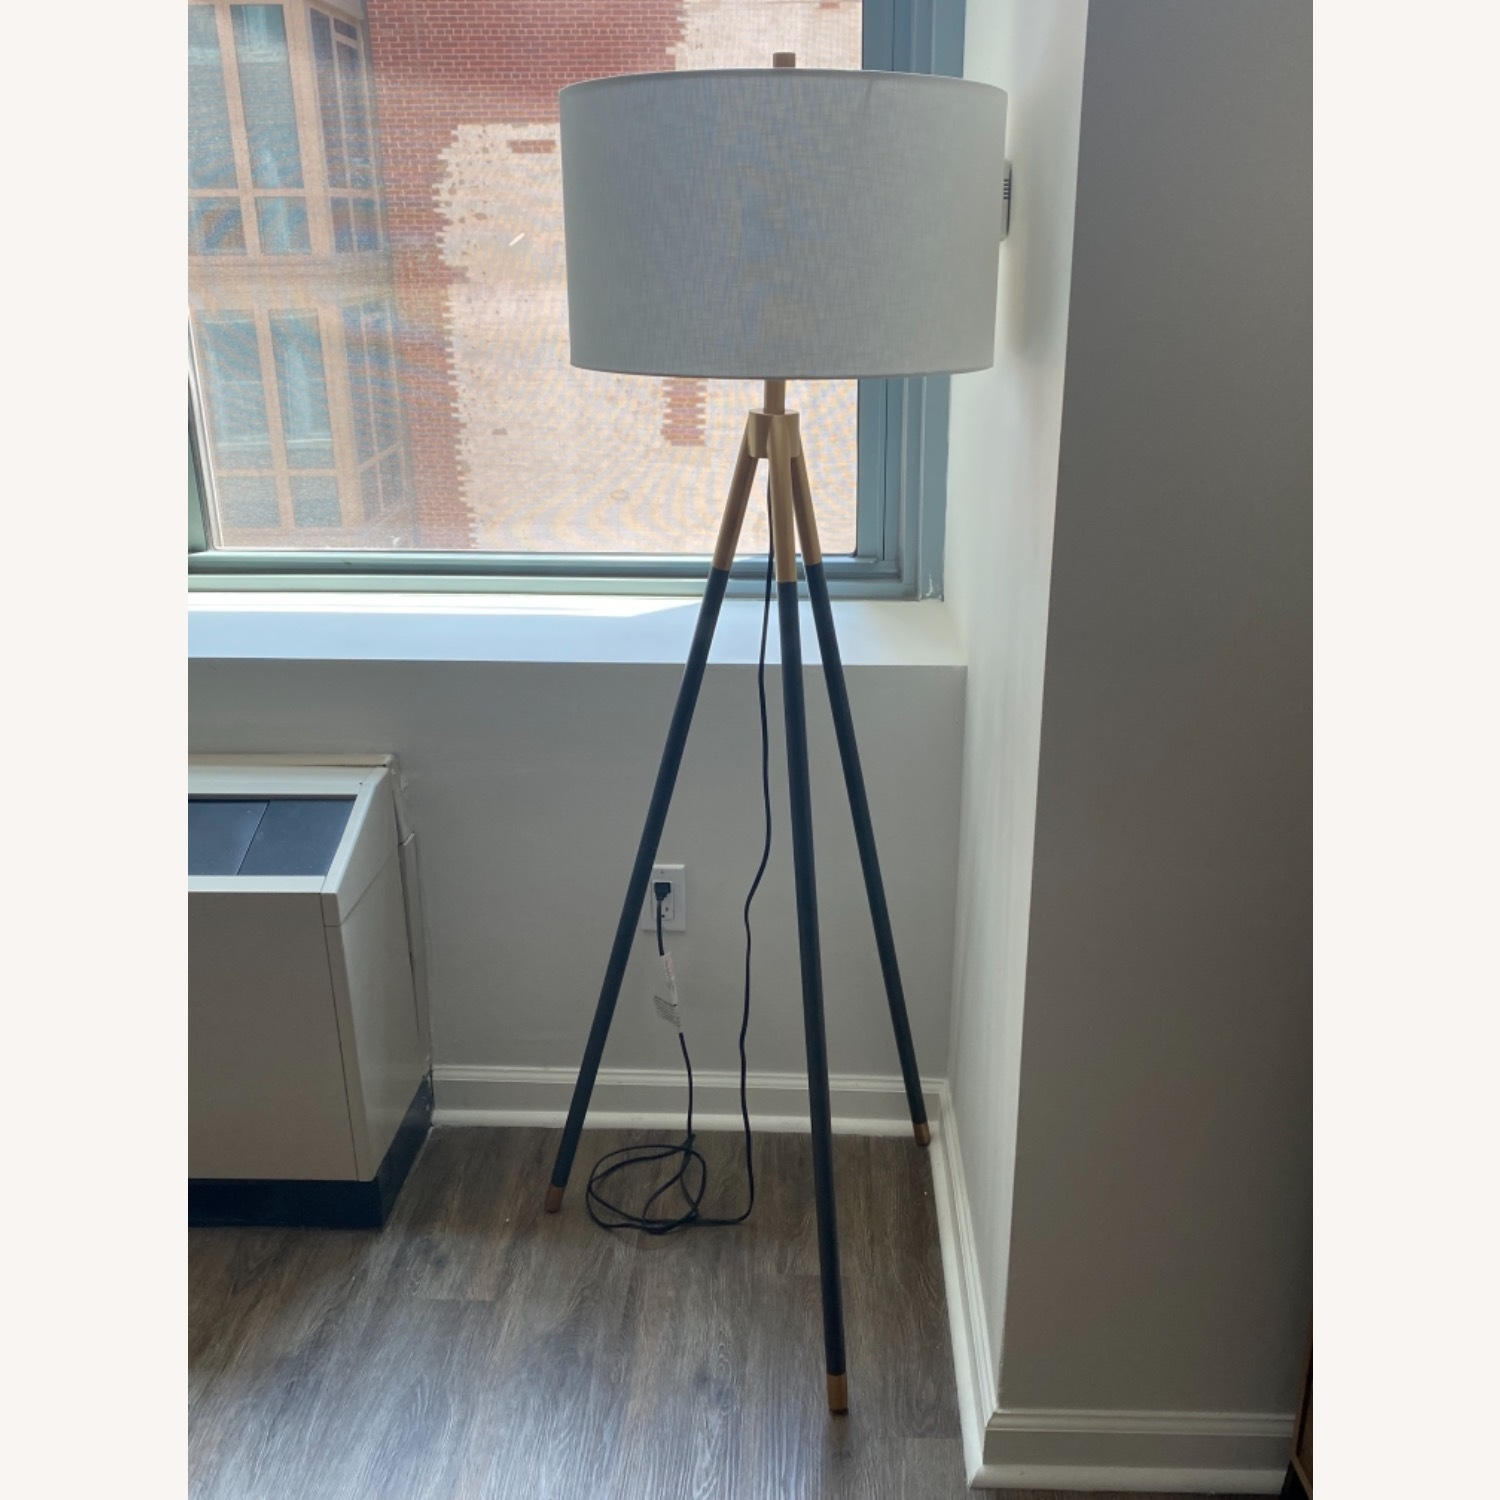 Rowe Furniture Black and Gold Tripod Floor Lamp - image-3